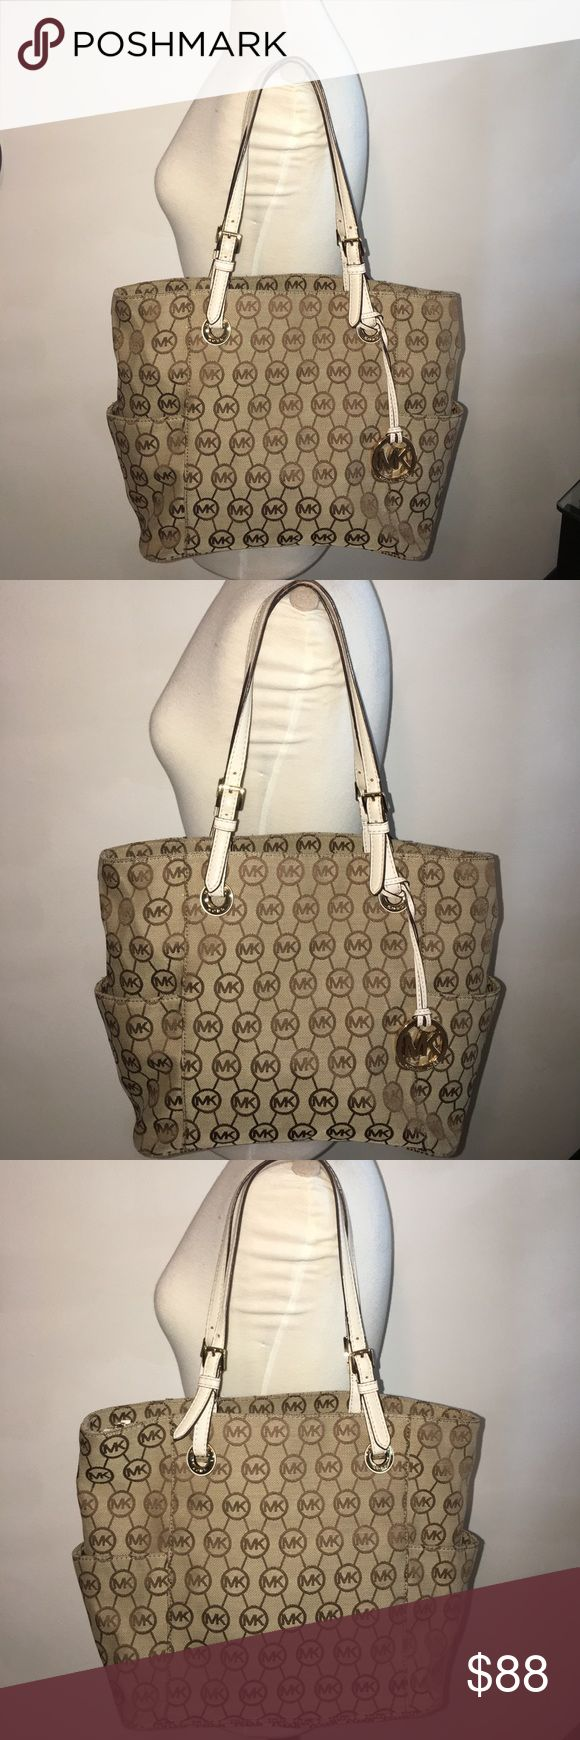 """Real Michael Kors Monogram tote bag. Real Michael Kors Monogram tote bag, with code AV-1111, Beige and Brown MK monogram fabric, Cream leather straps, beige MK monogram inside, gold hardware. 10.5"""" X 15"""" X 5.5"""" Looks in good condition, No tears, normal wear on the corners and on the straps, nothing terrible, Please read the description well, So I do not have to get any returns.  -No holds.  -No trades. -Firm Price, No more discounts for this bag, It is not easy to find good prices for…"""